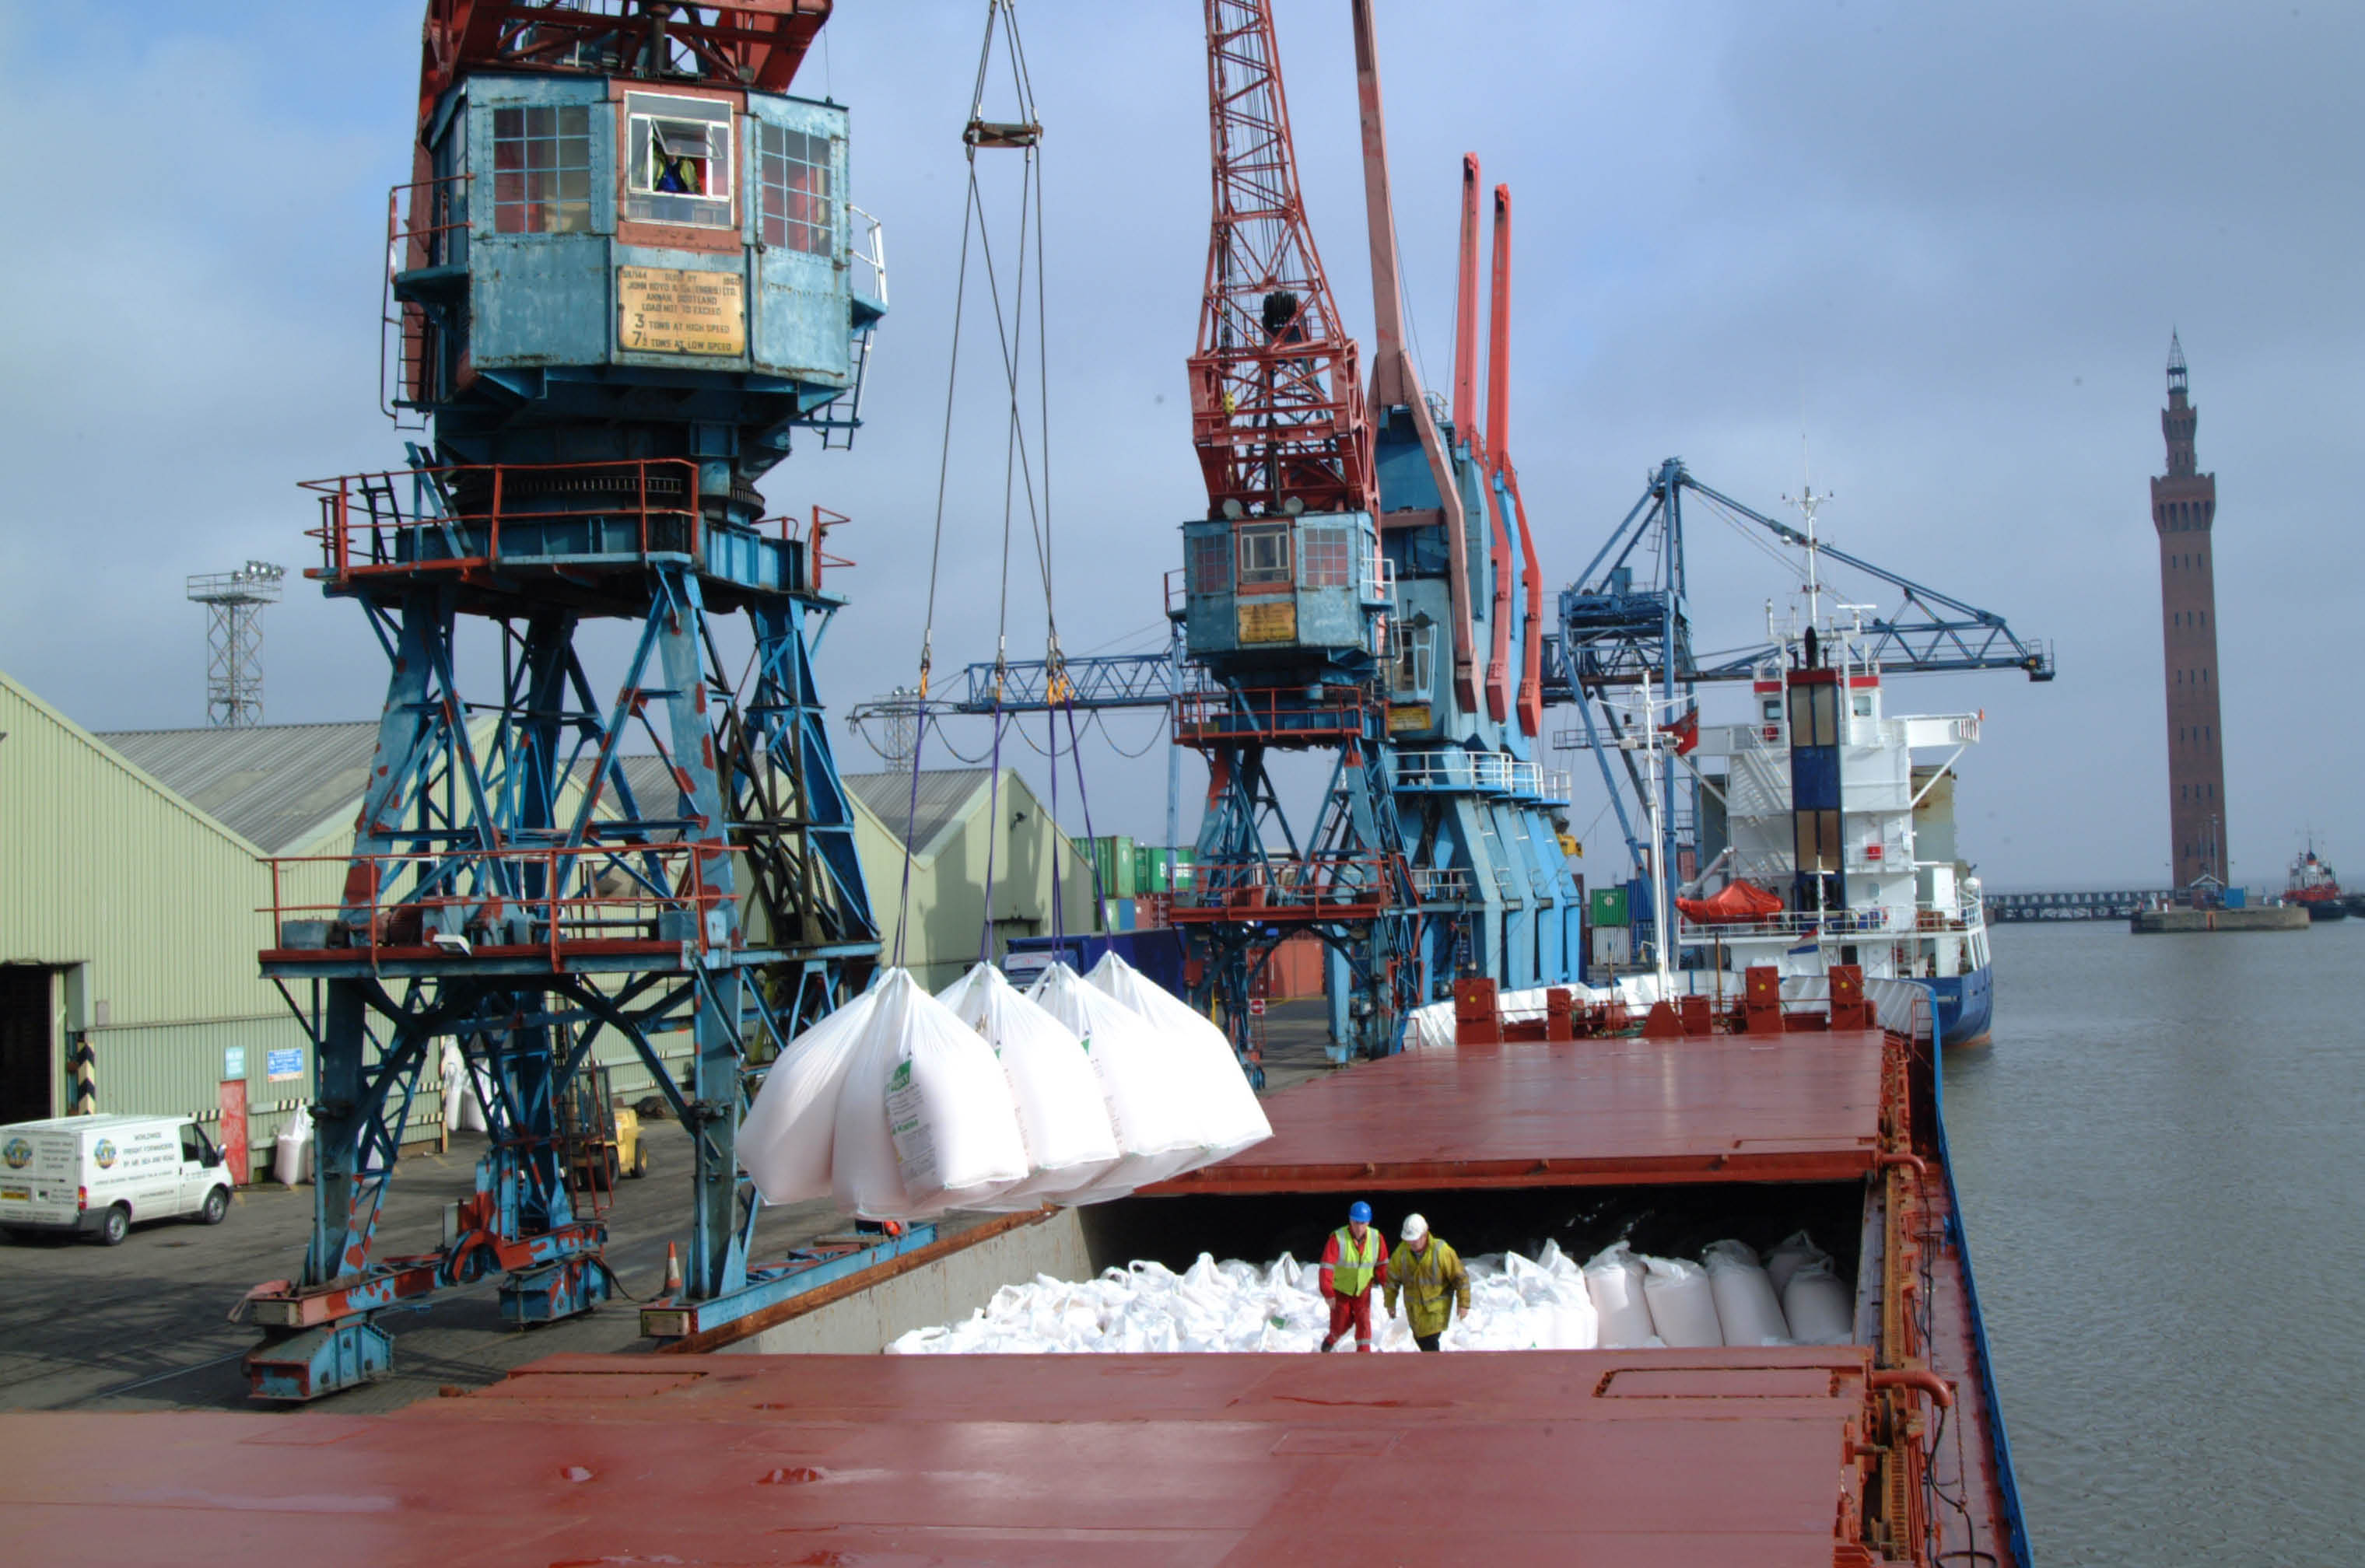 Lithan Ammonium Nitrate Discharging at Port